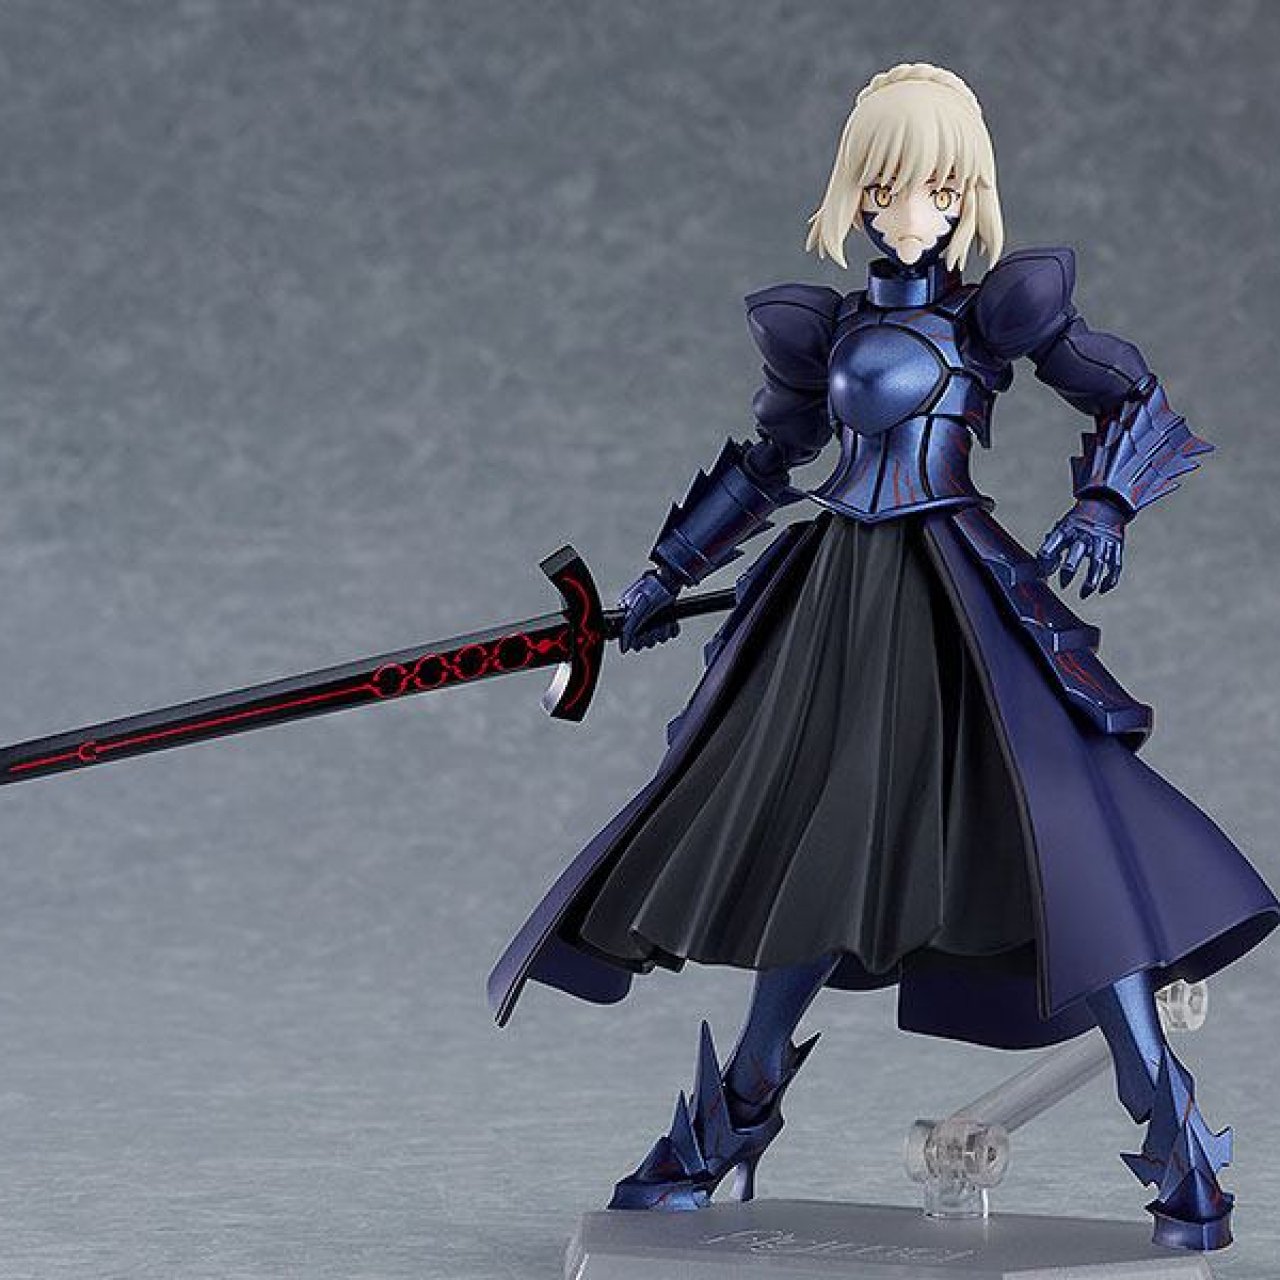 Fate/Stay Night Figma Action Figure Saber Alter 2.0 14 cm